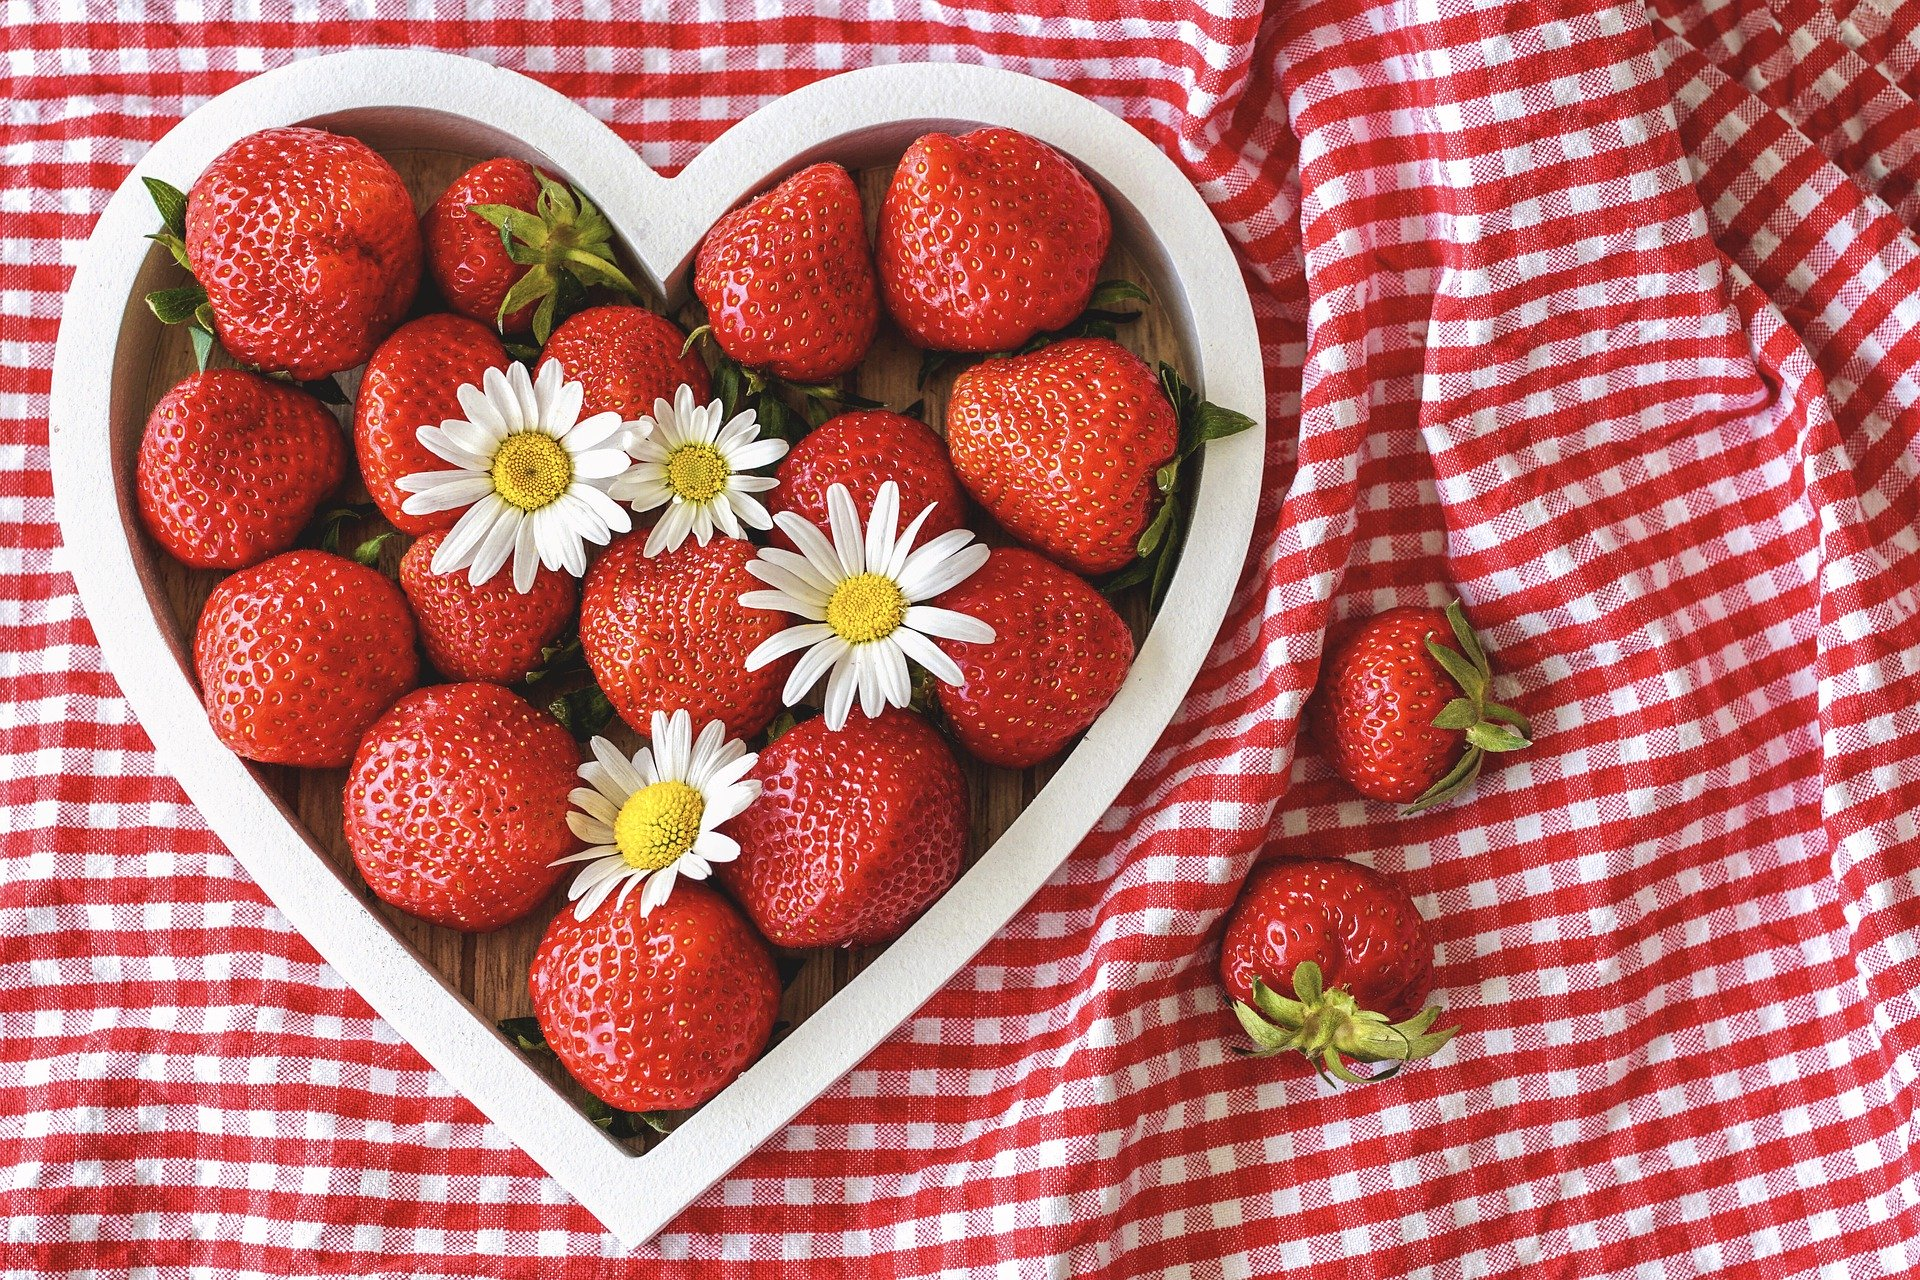 Strawberries help your brain to communicate with your digestive system.